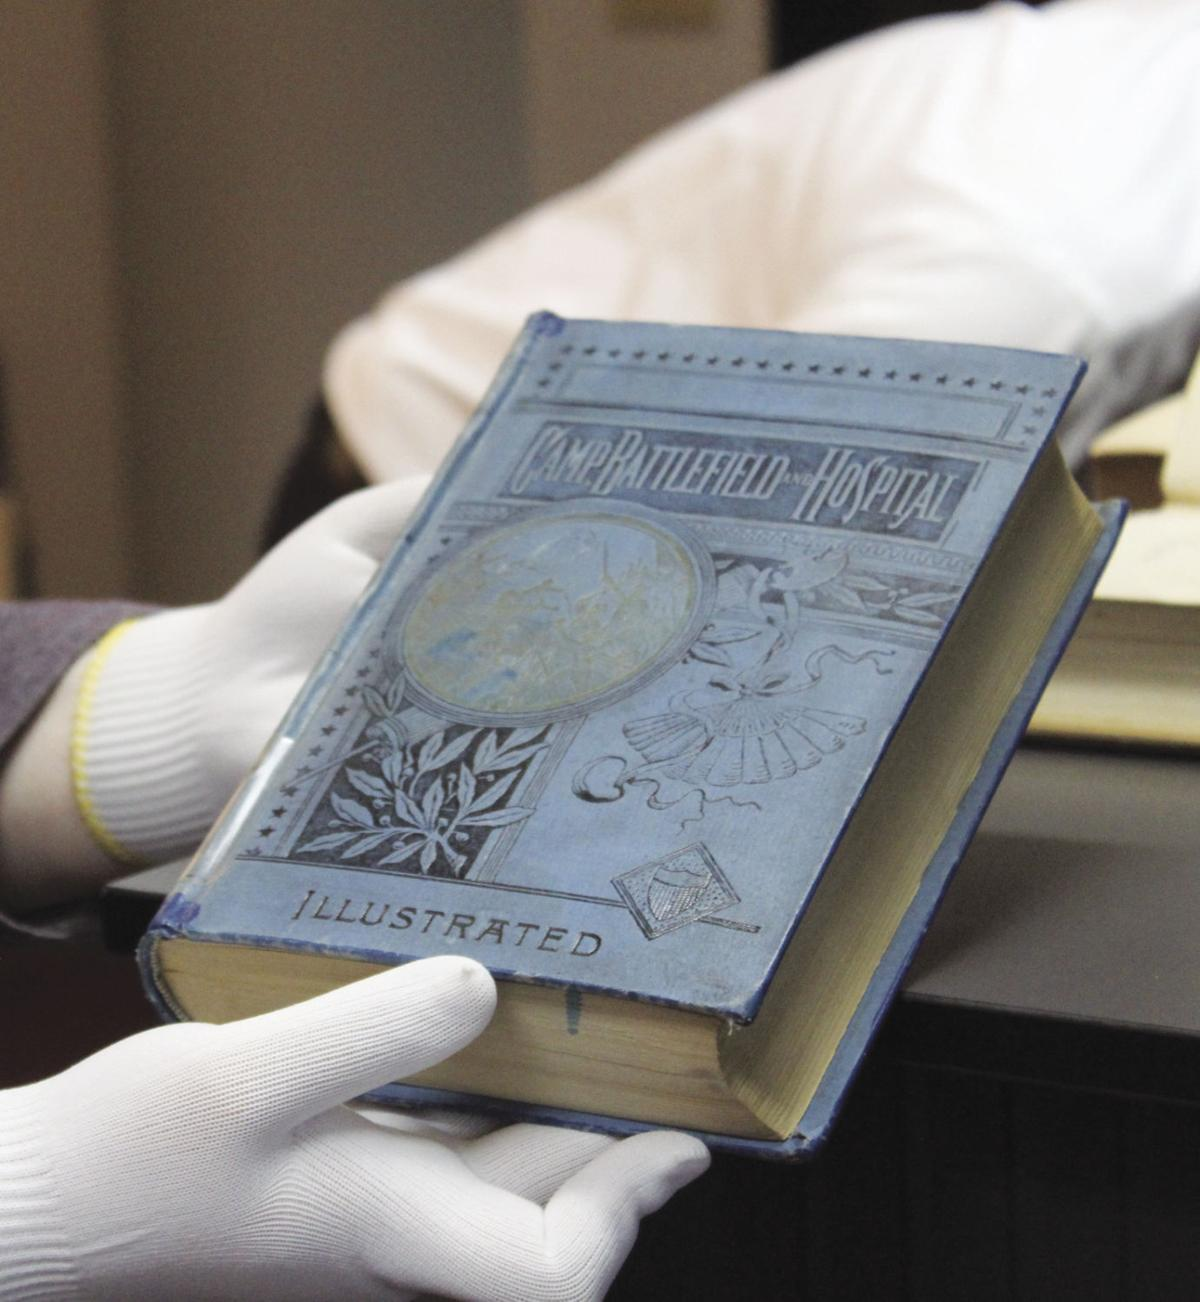 Hidden history at RSU Library: A look inside the archive